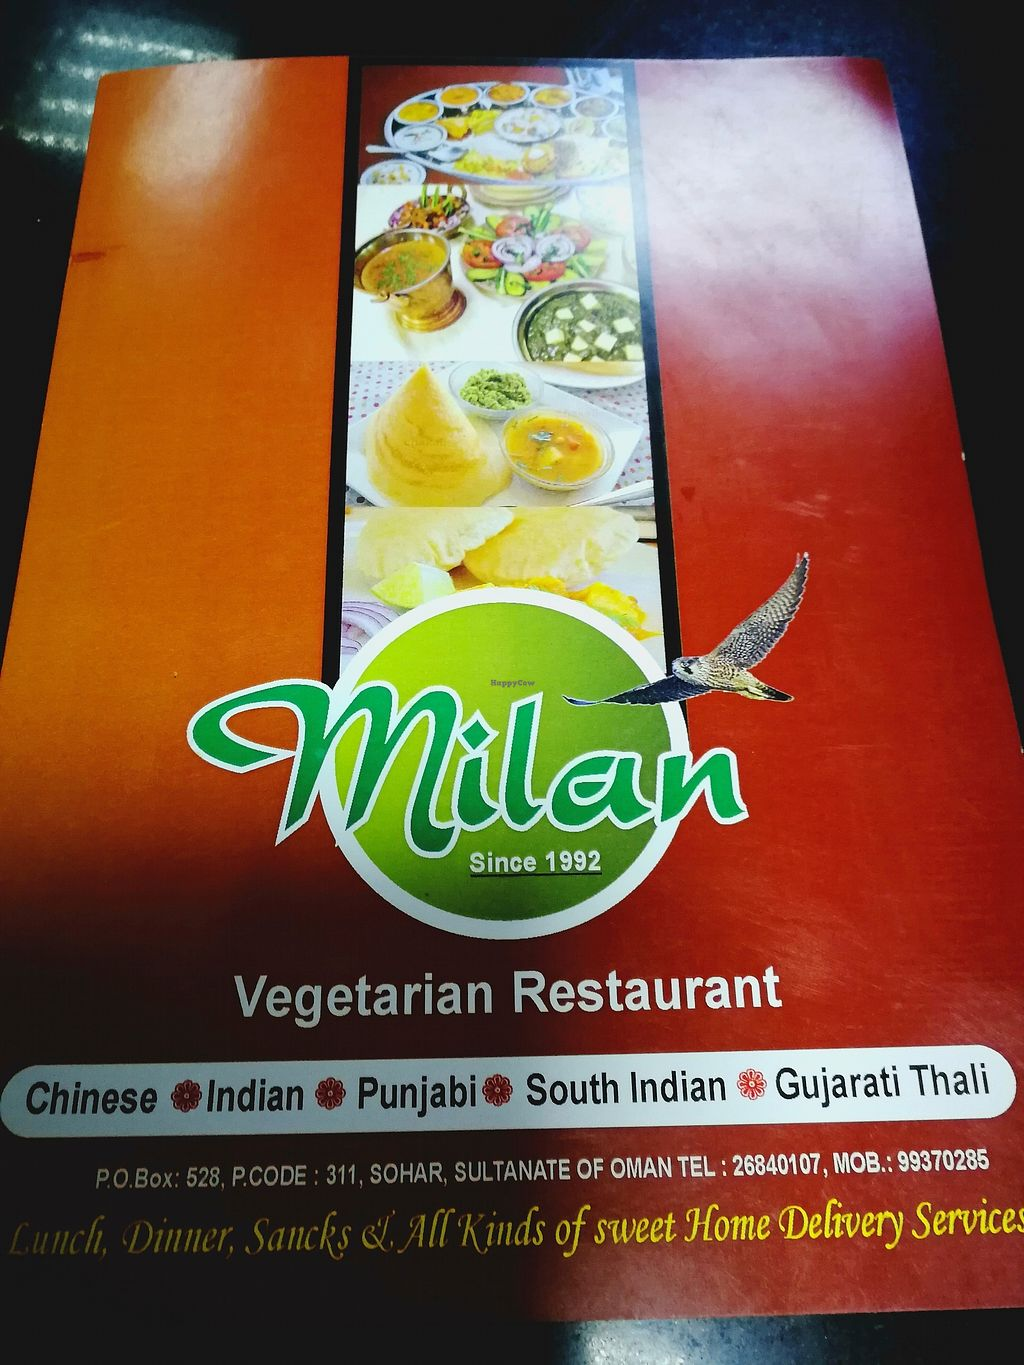 """Photo of Milan Restaurant  by <a href=""""/members/profile/Gudrun"""">Gudrun</a> <br/>The menu <br/> October 23, 2017  - <a href='/contact/abuse/image/20559/318048'>Report</a>"""